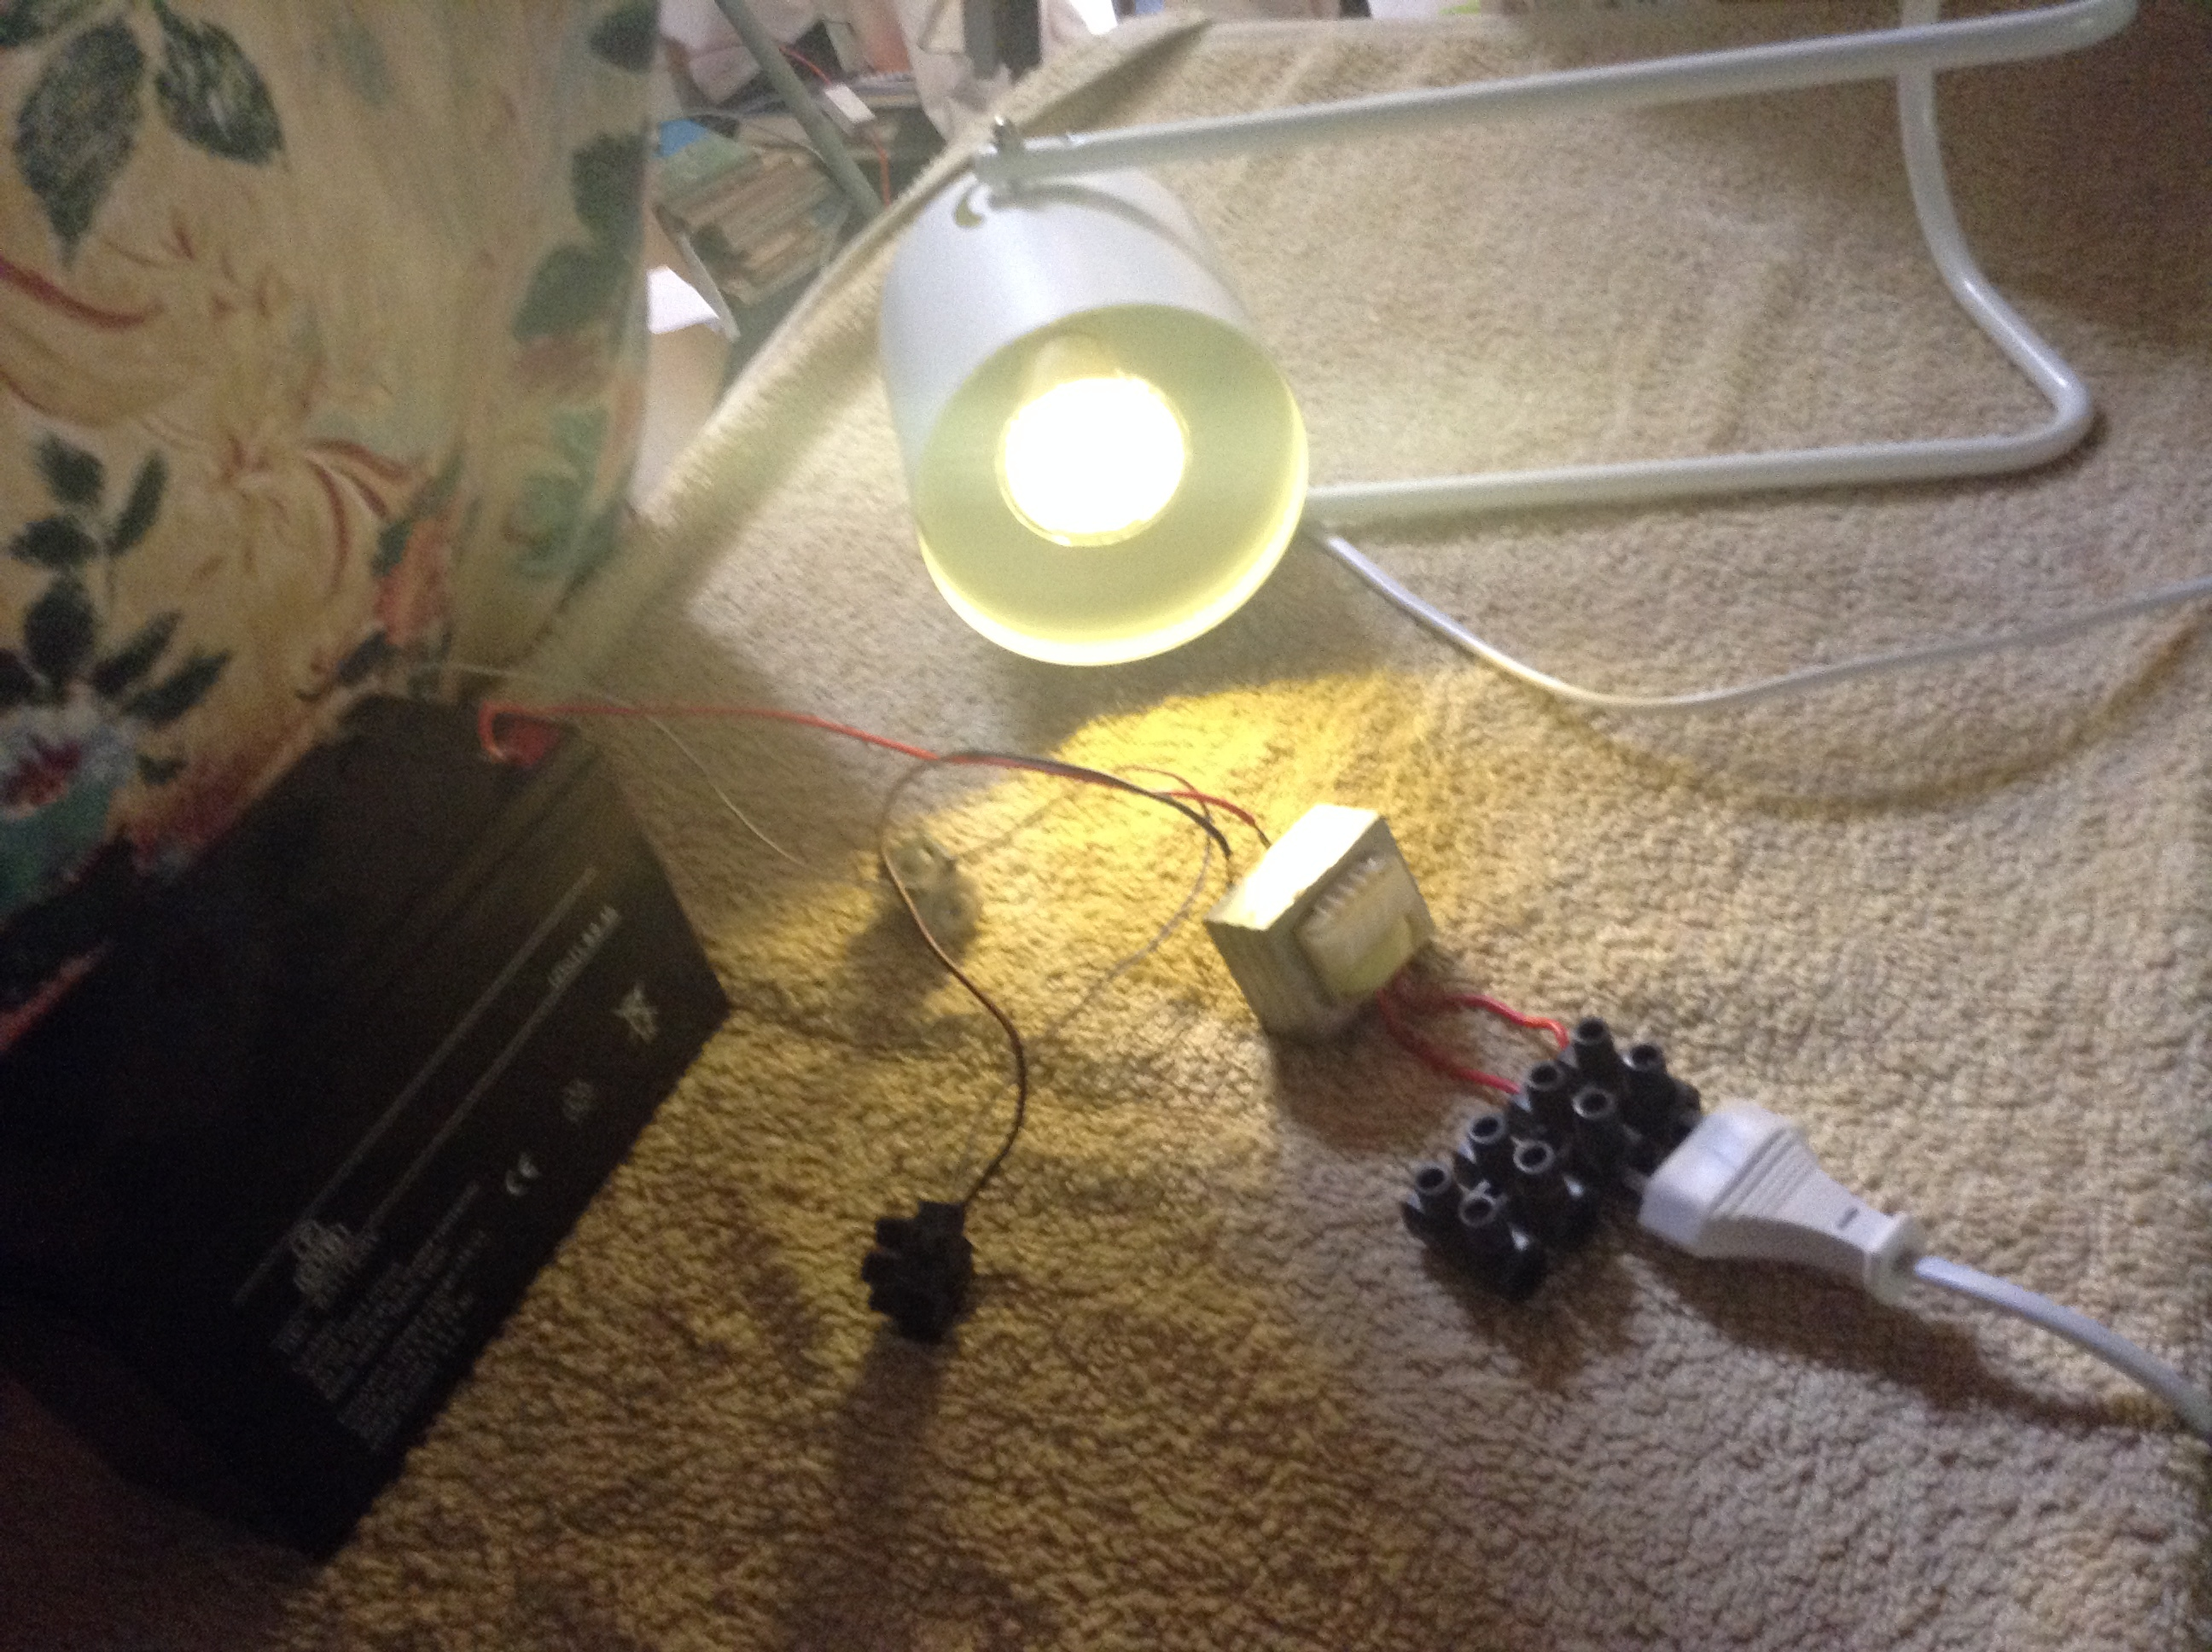 Simplest Inverter With Just a DC Motor 12V to 220V AC